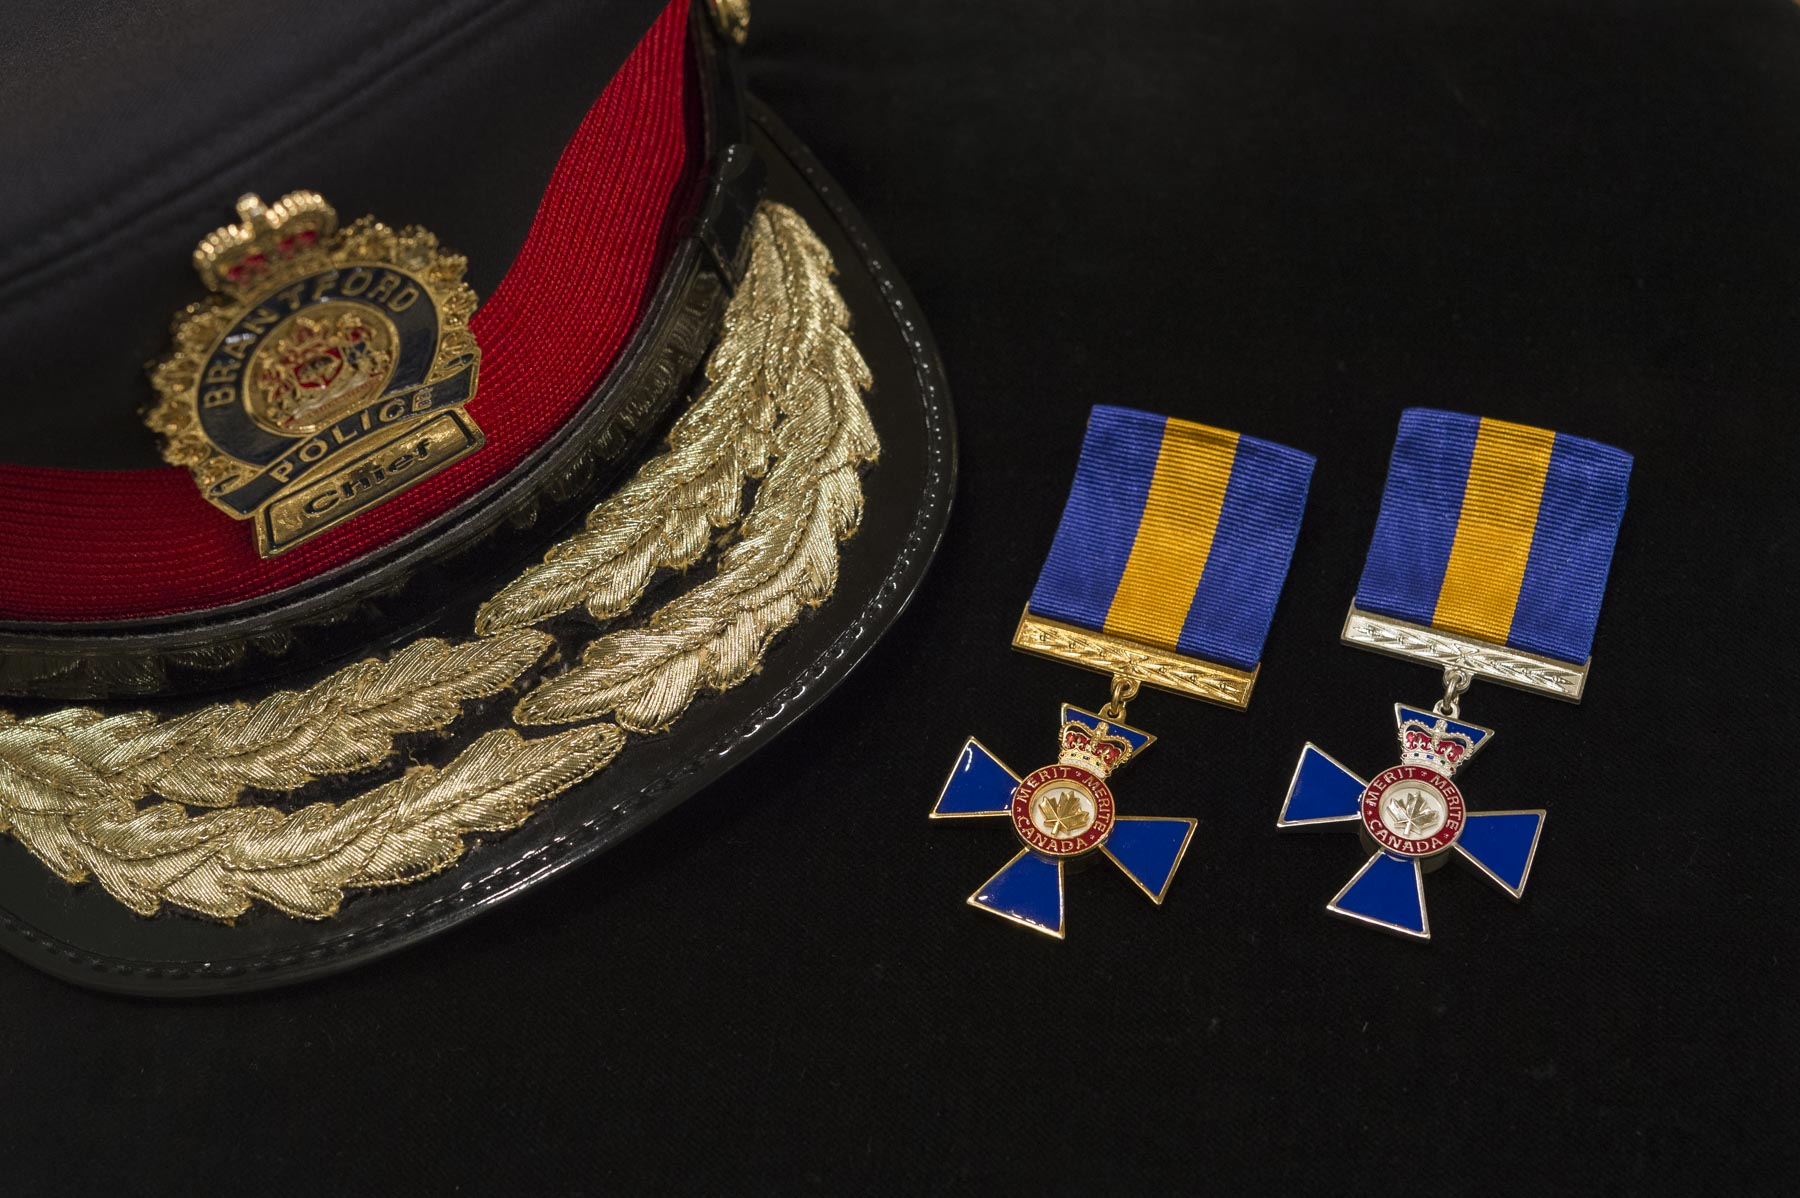 The Governor General presided over an Order of Merit of the Police Forces investiture ceremony at Rideau Hall on May 25, 2017, and bestowed the honour on 4 Officers and 40 Members.